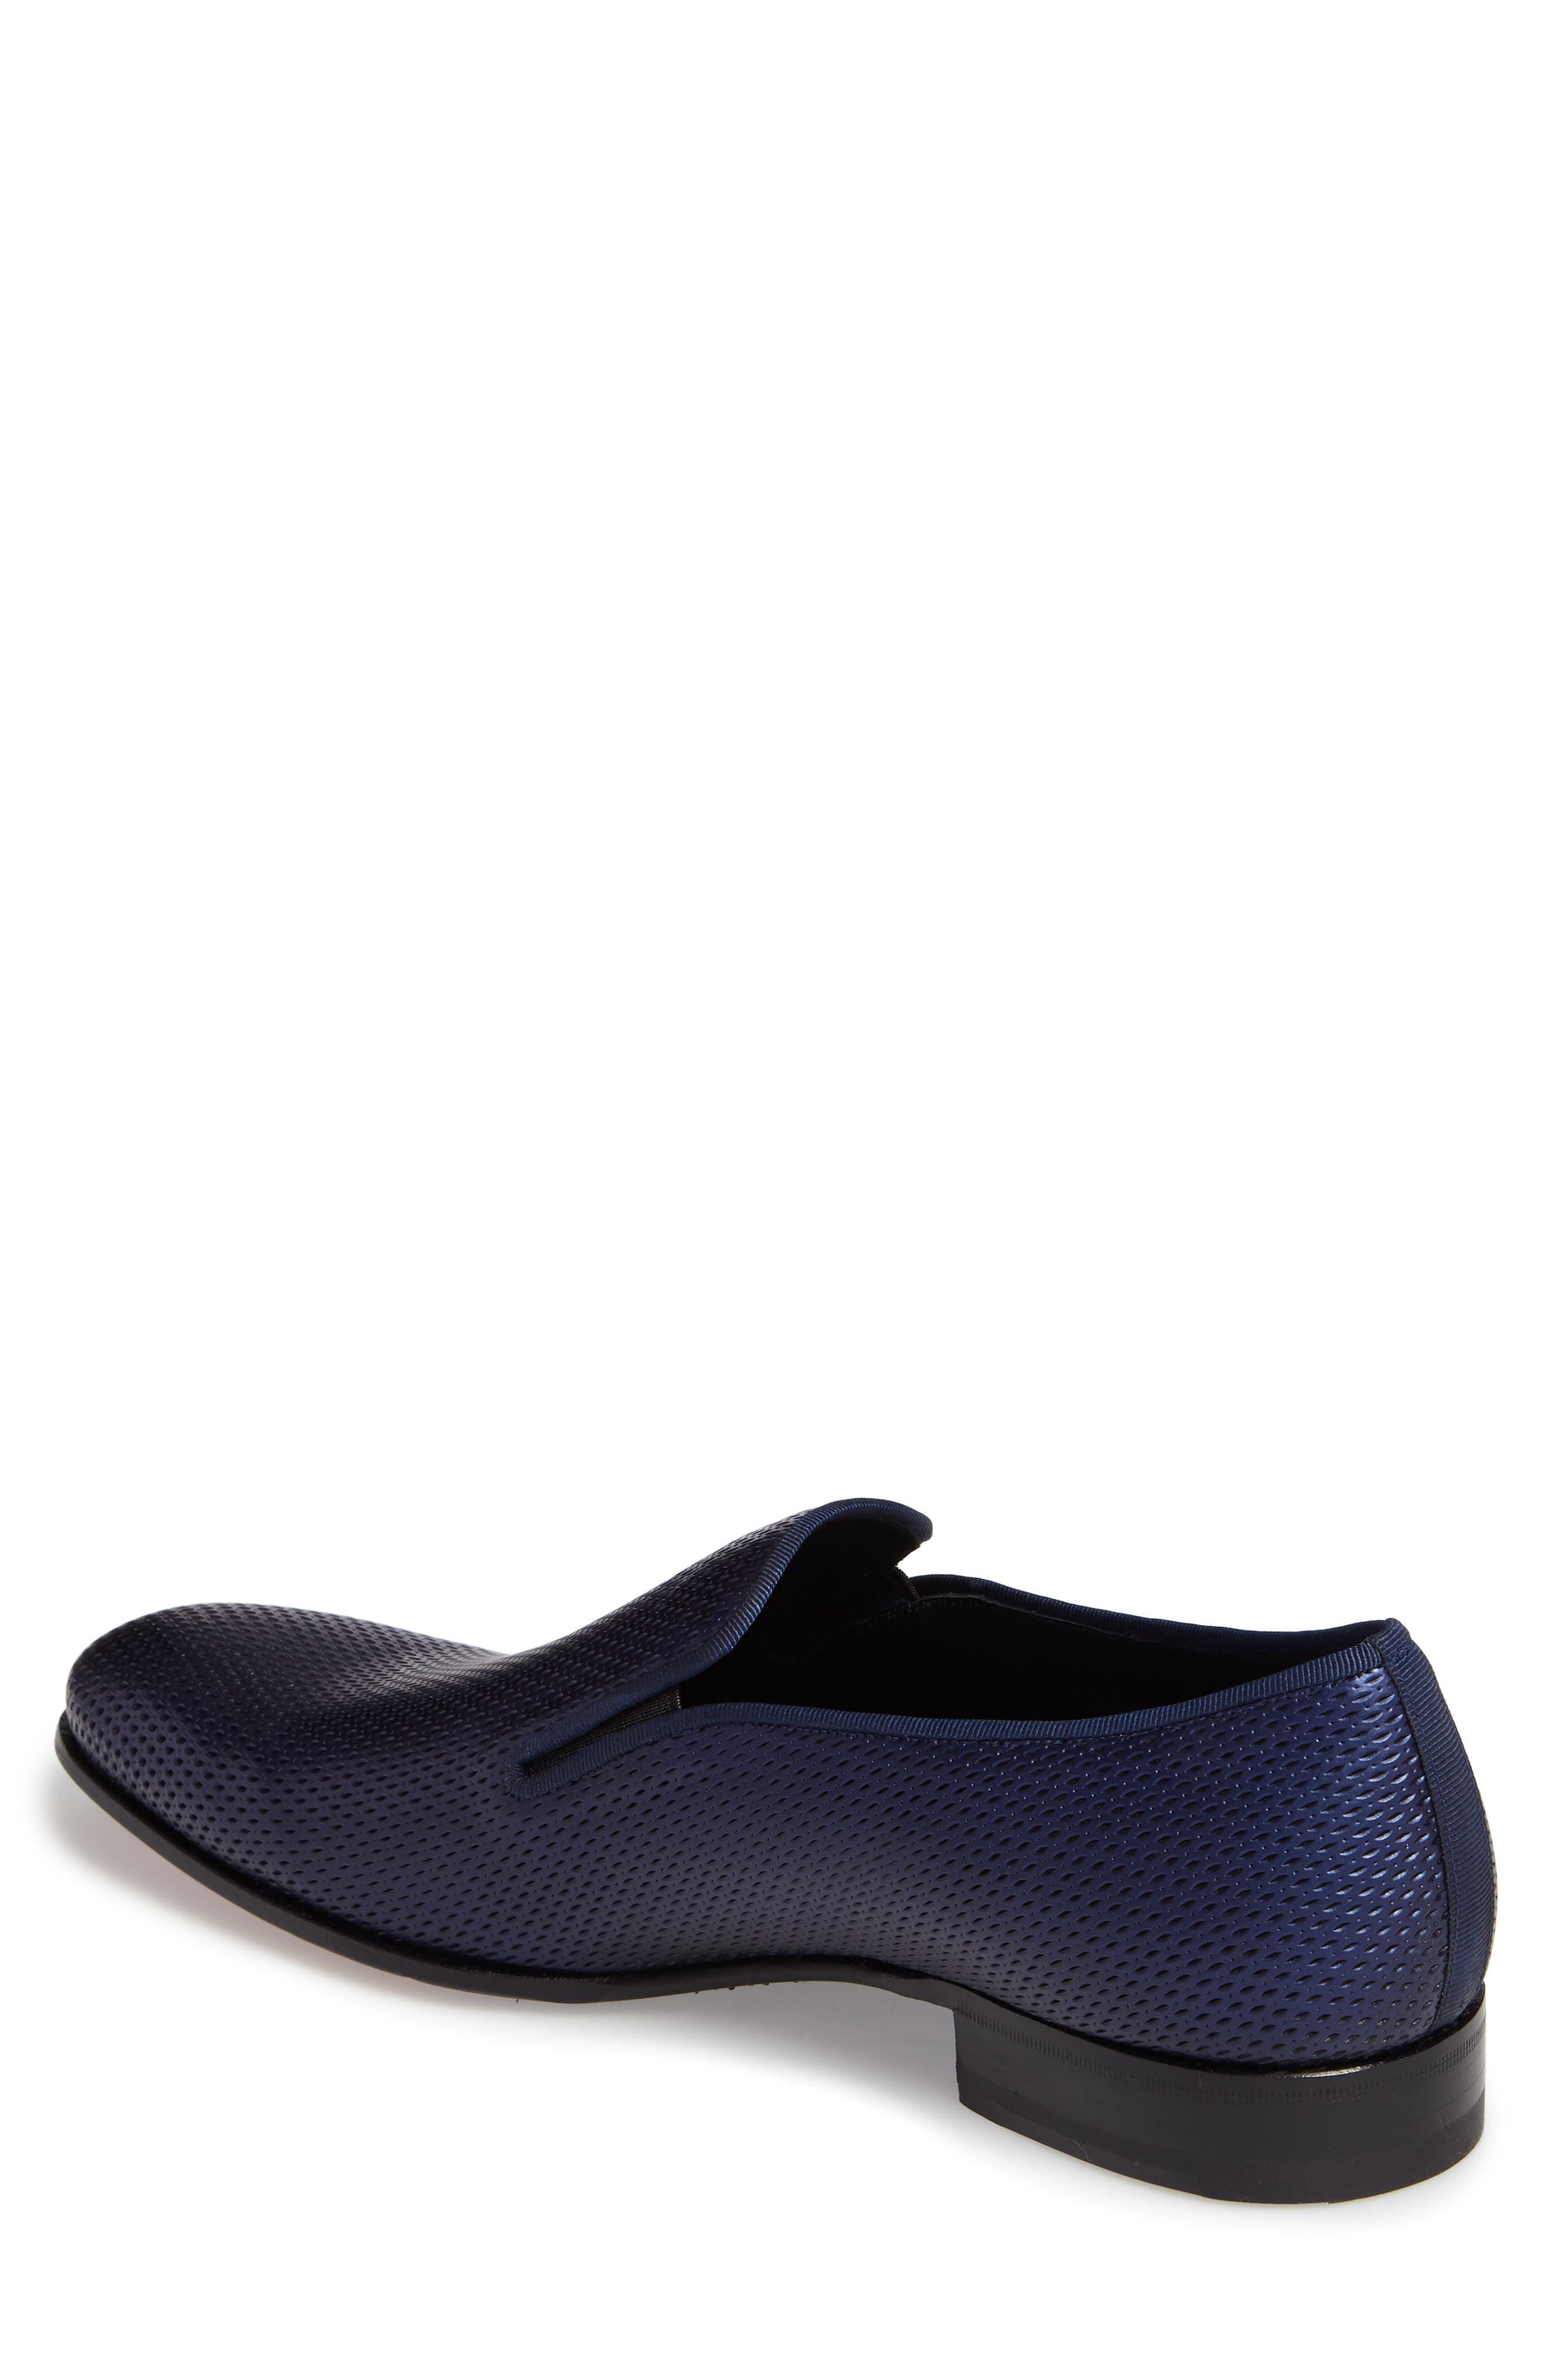 Auguste Venetian Loafer,                             Alternate thumbnail 2, color,